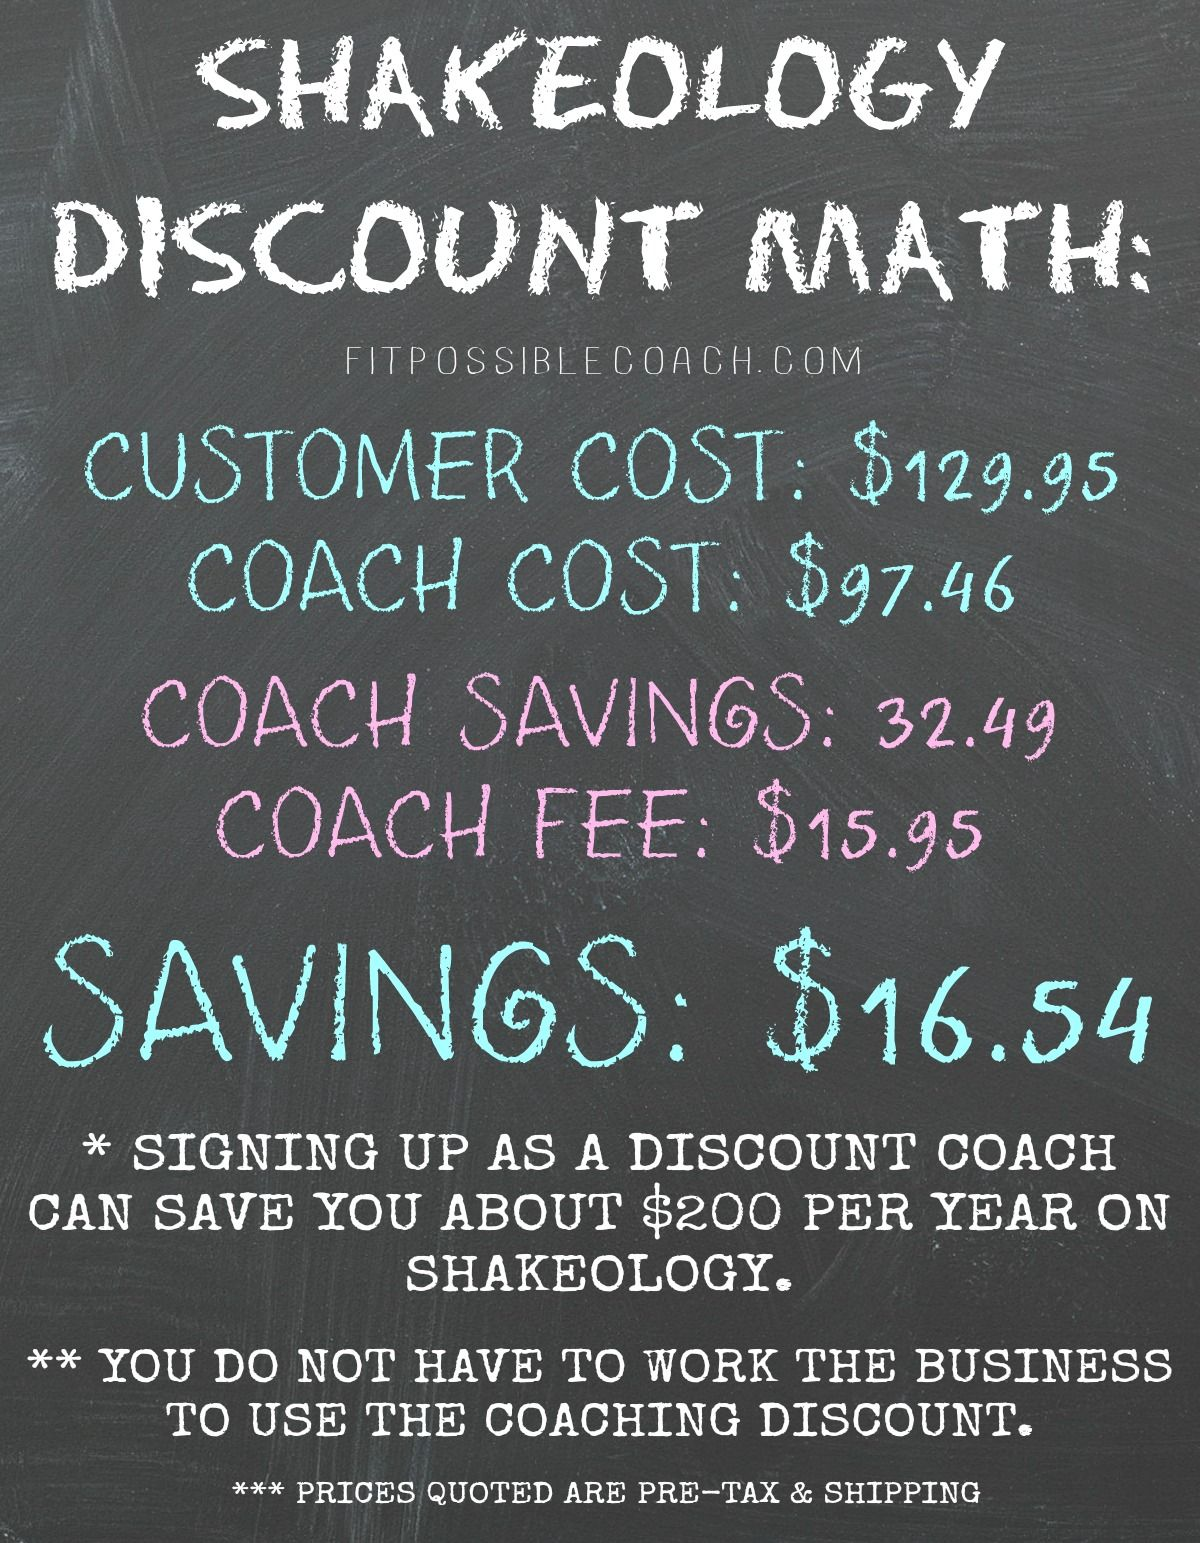 Take advantage of the Discount on Shakeology by signing up ...